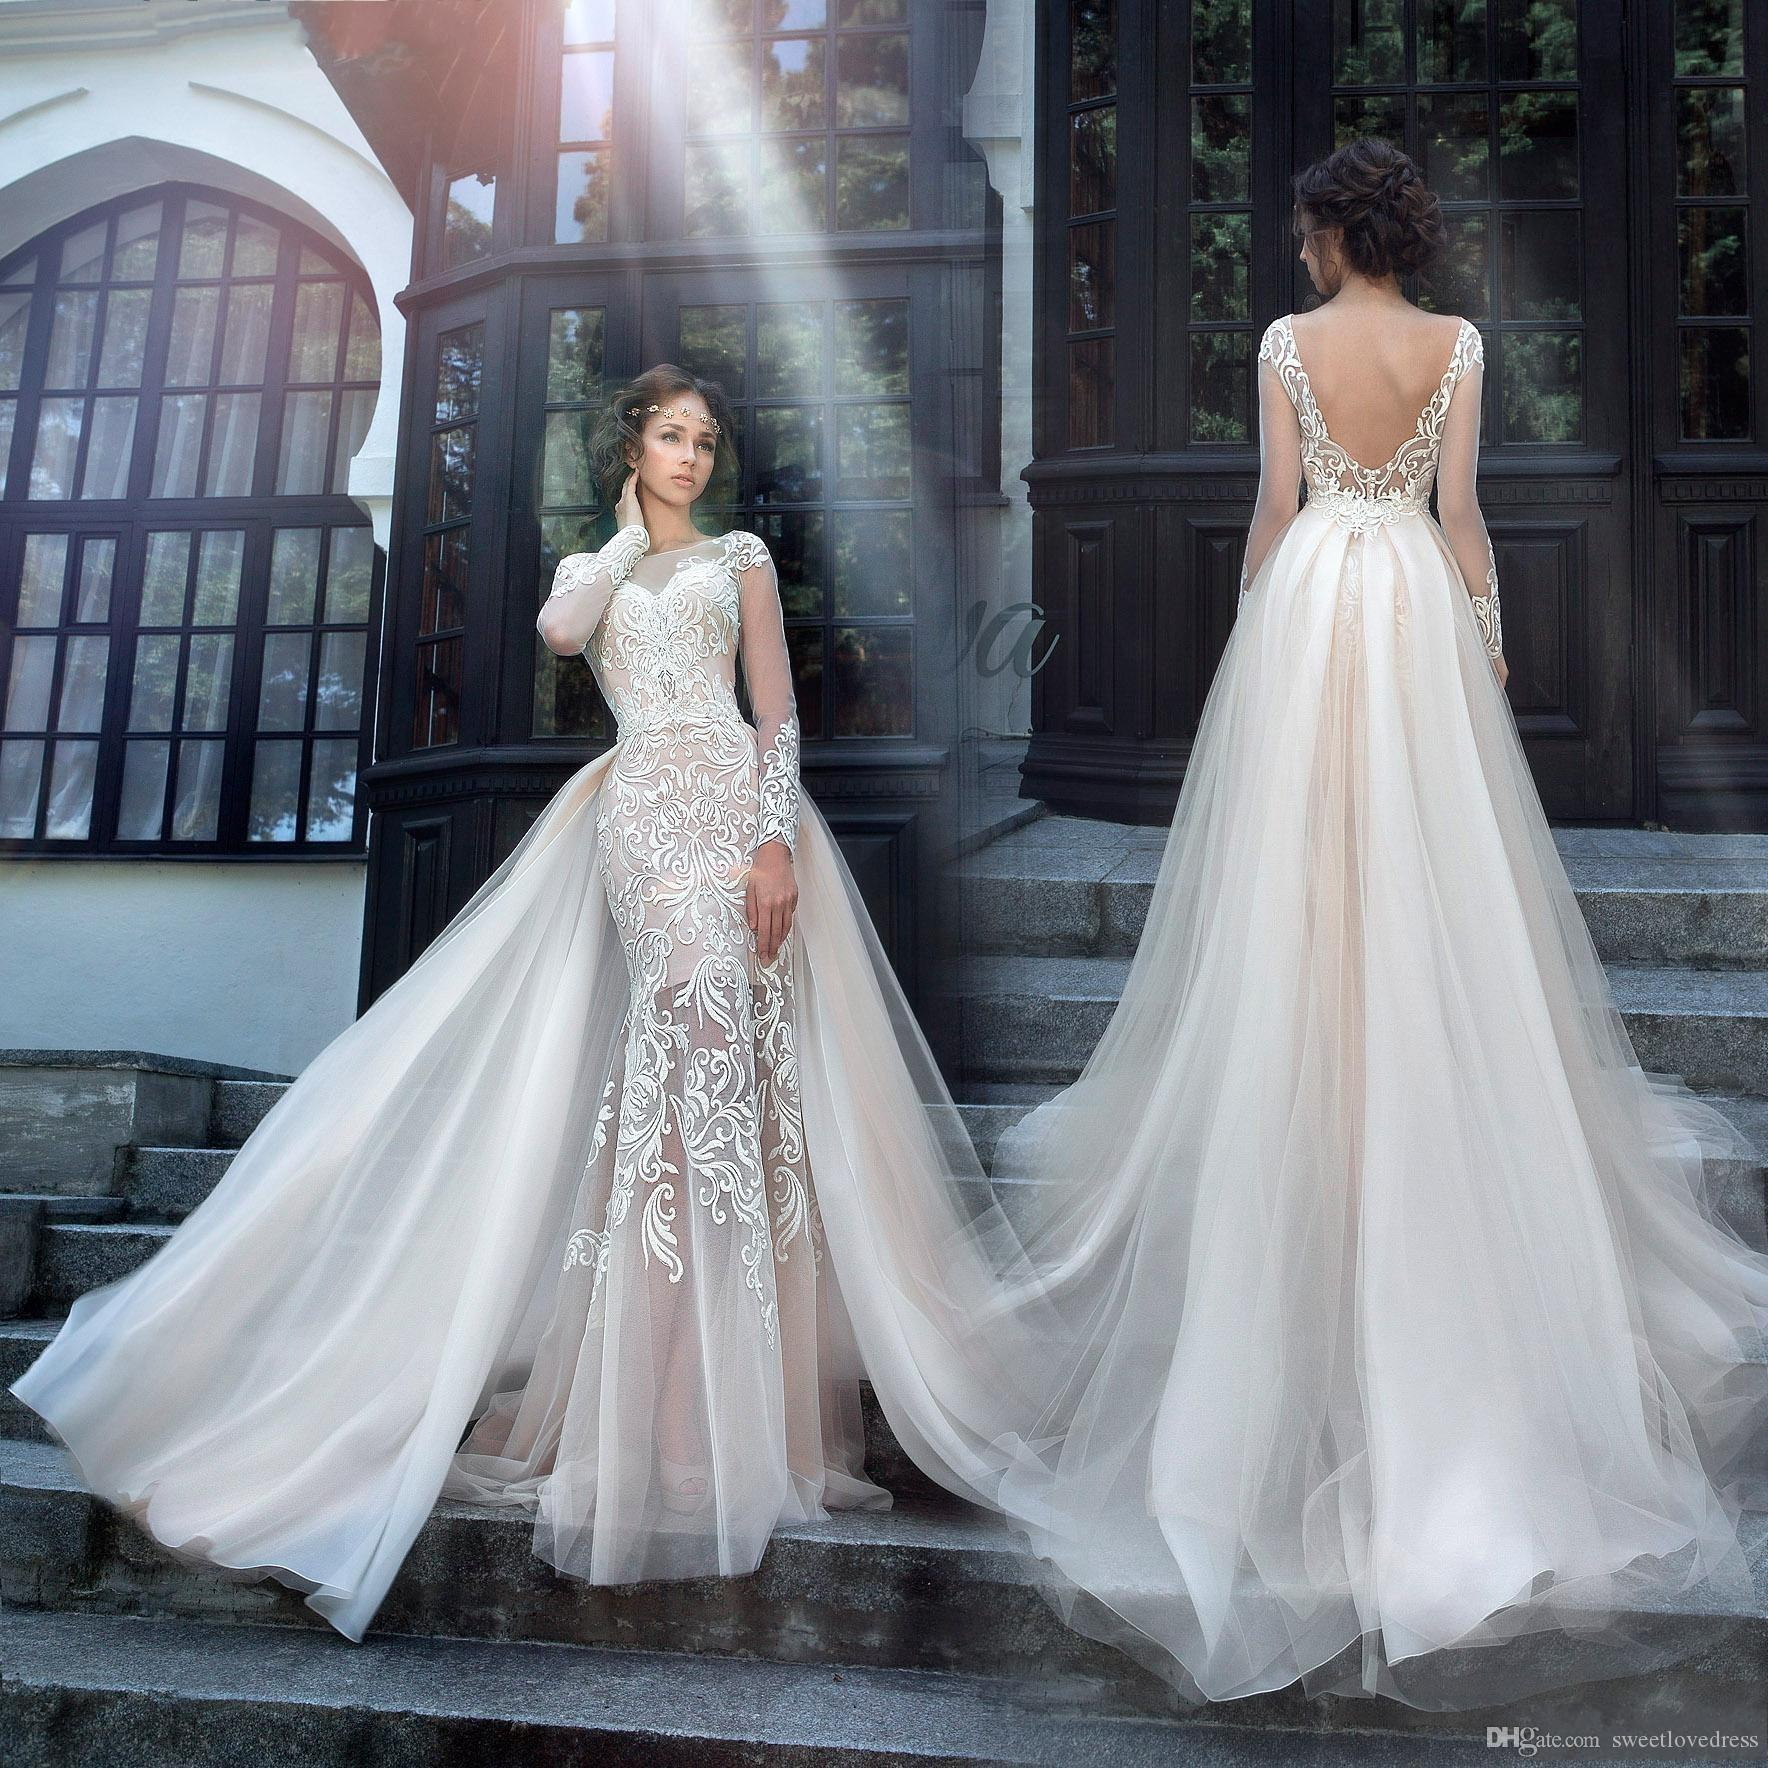 2017 Mermaid Detachable Wedding Dresses Lace Applique Backless Long Sleeves Boho Bridal Gowns Floor Length Dress Elegant